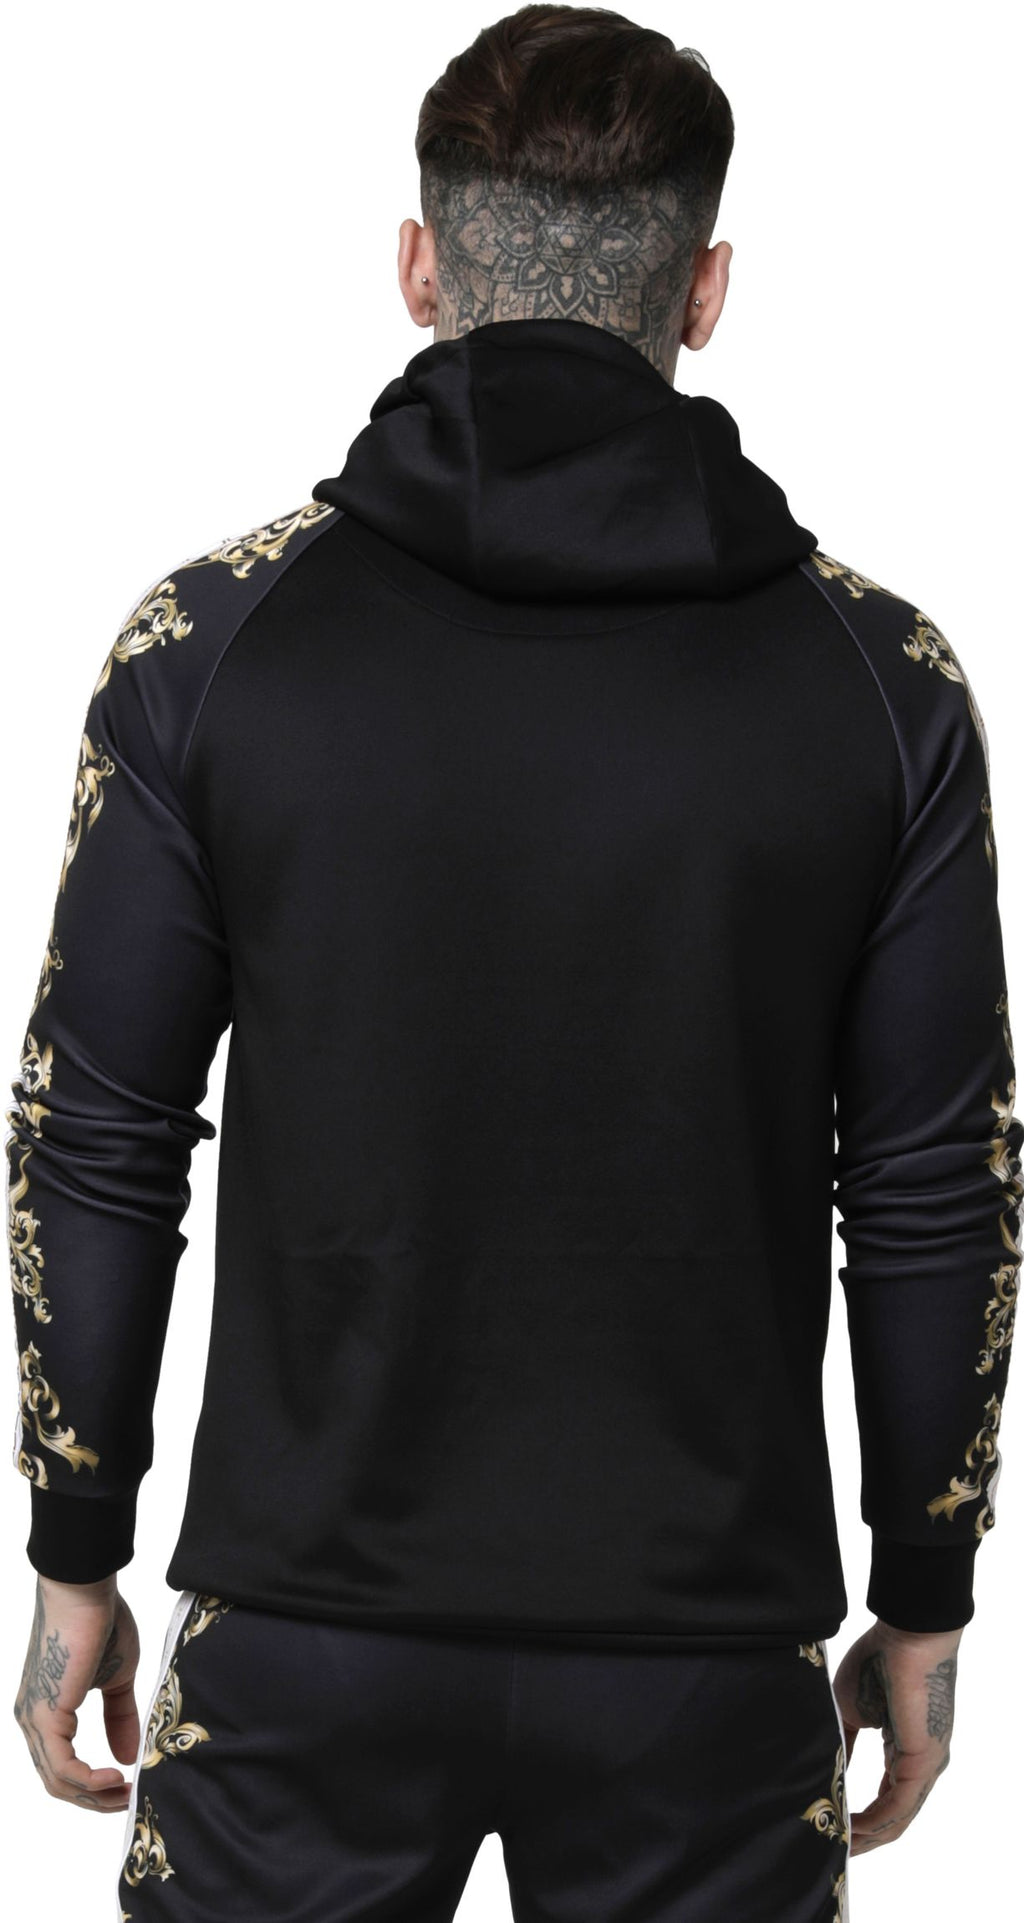 Sik Silk Raglan Muscle Fit Hoodie Black